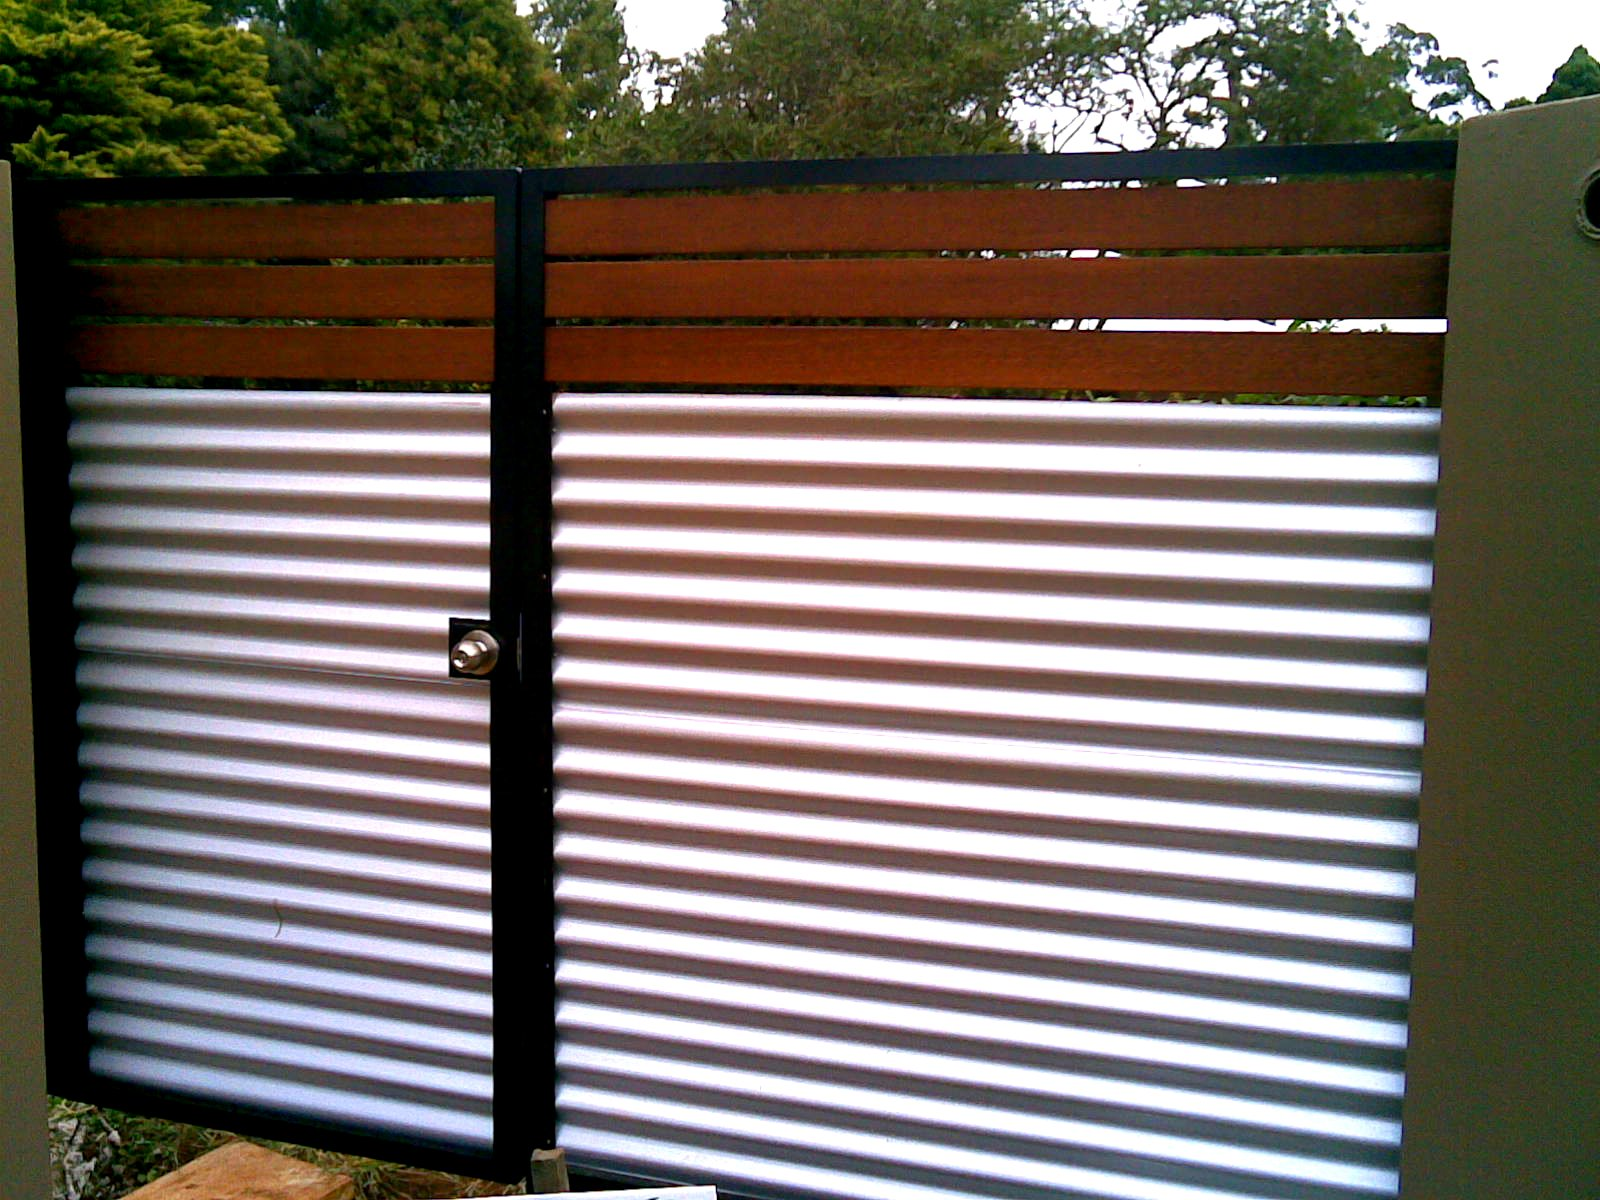 Retaining wall ideas corrugated steel and timber - Gates Amp Fences On Pinterest Fencing Fence And Sliding Gate